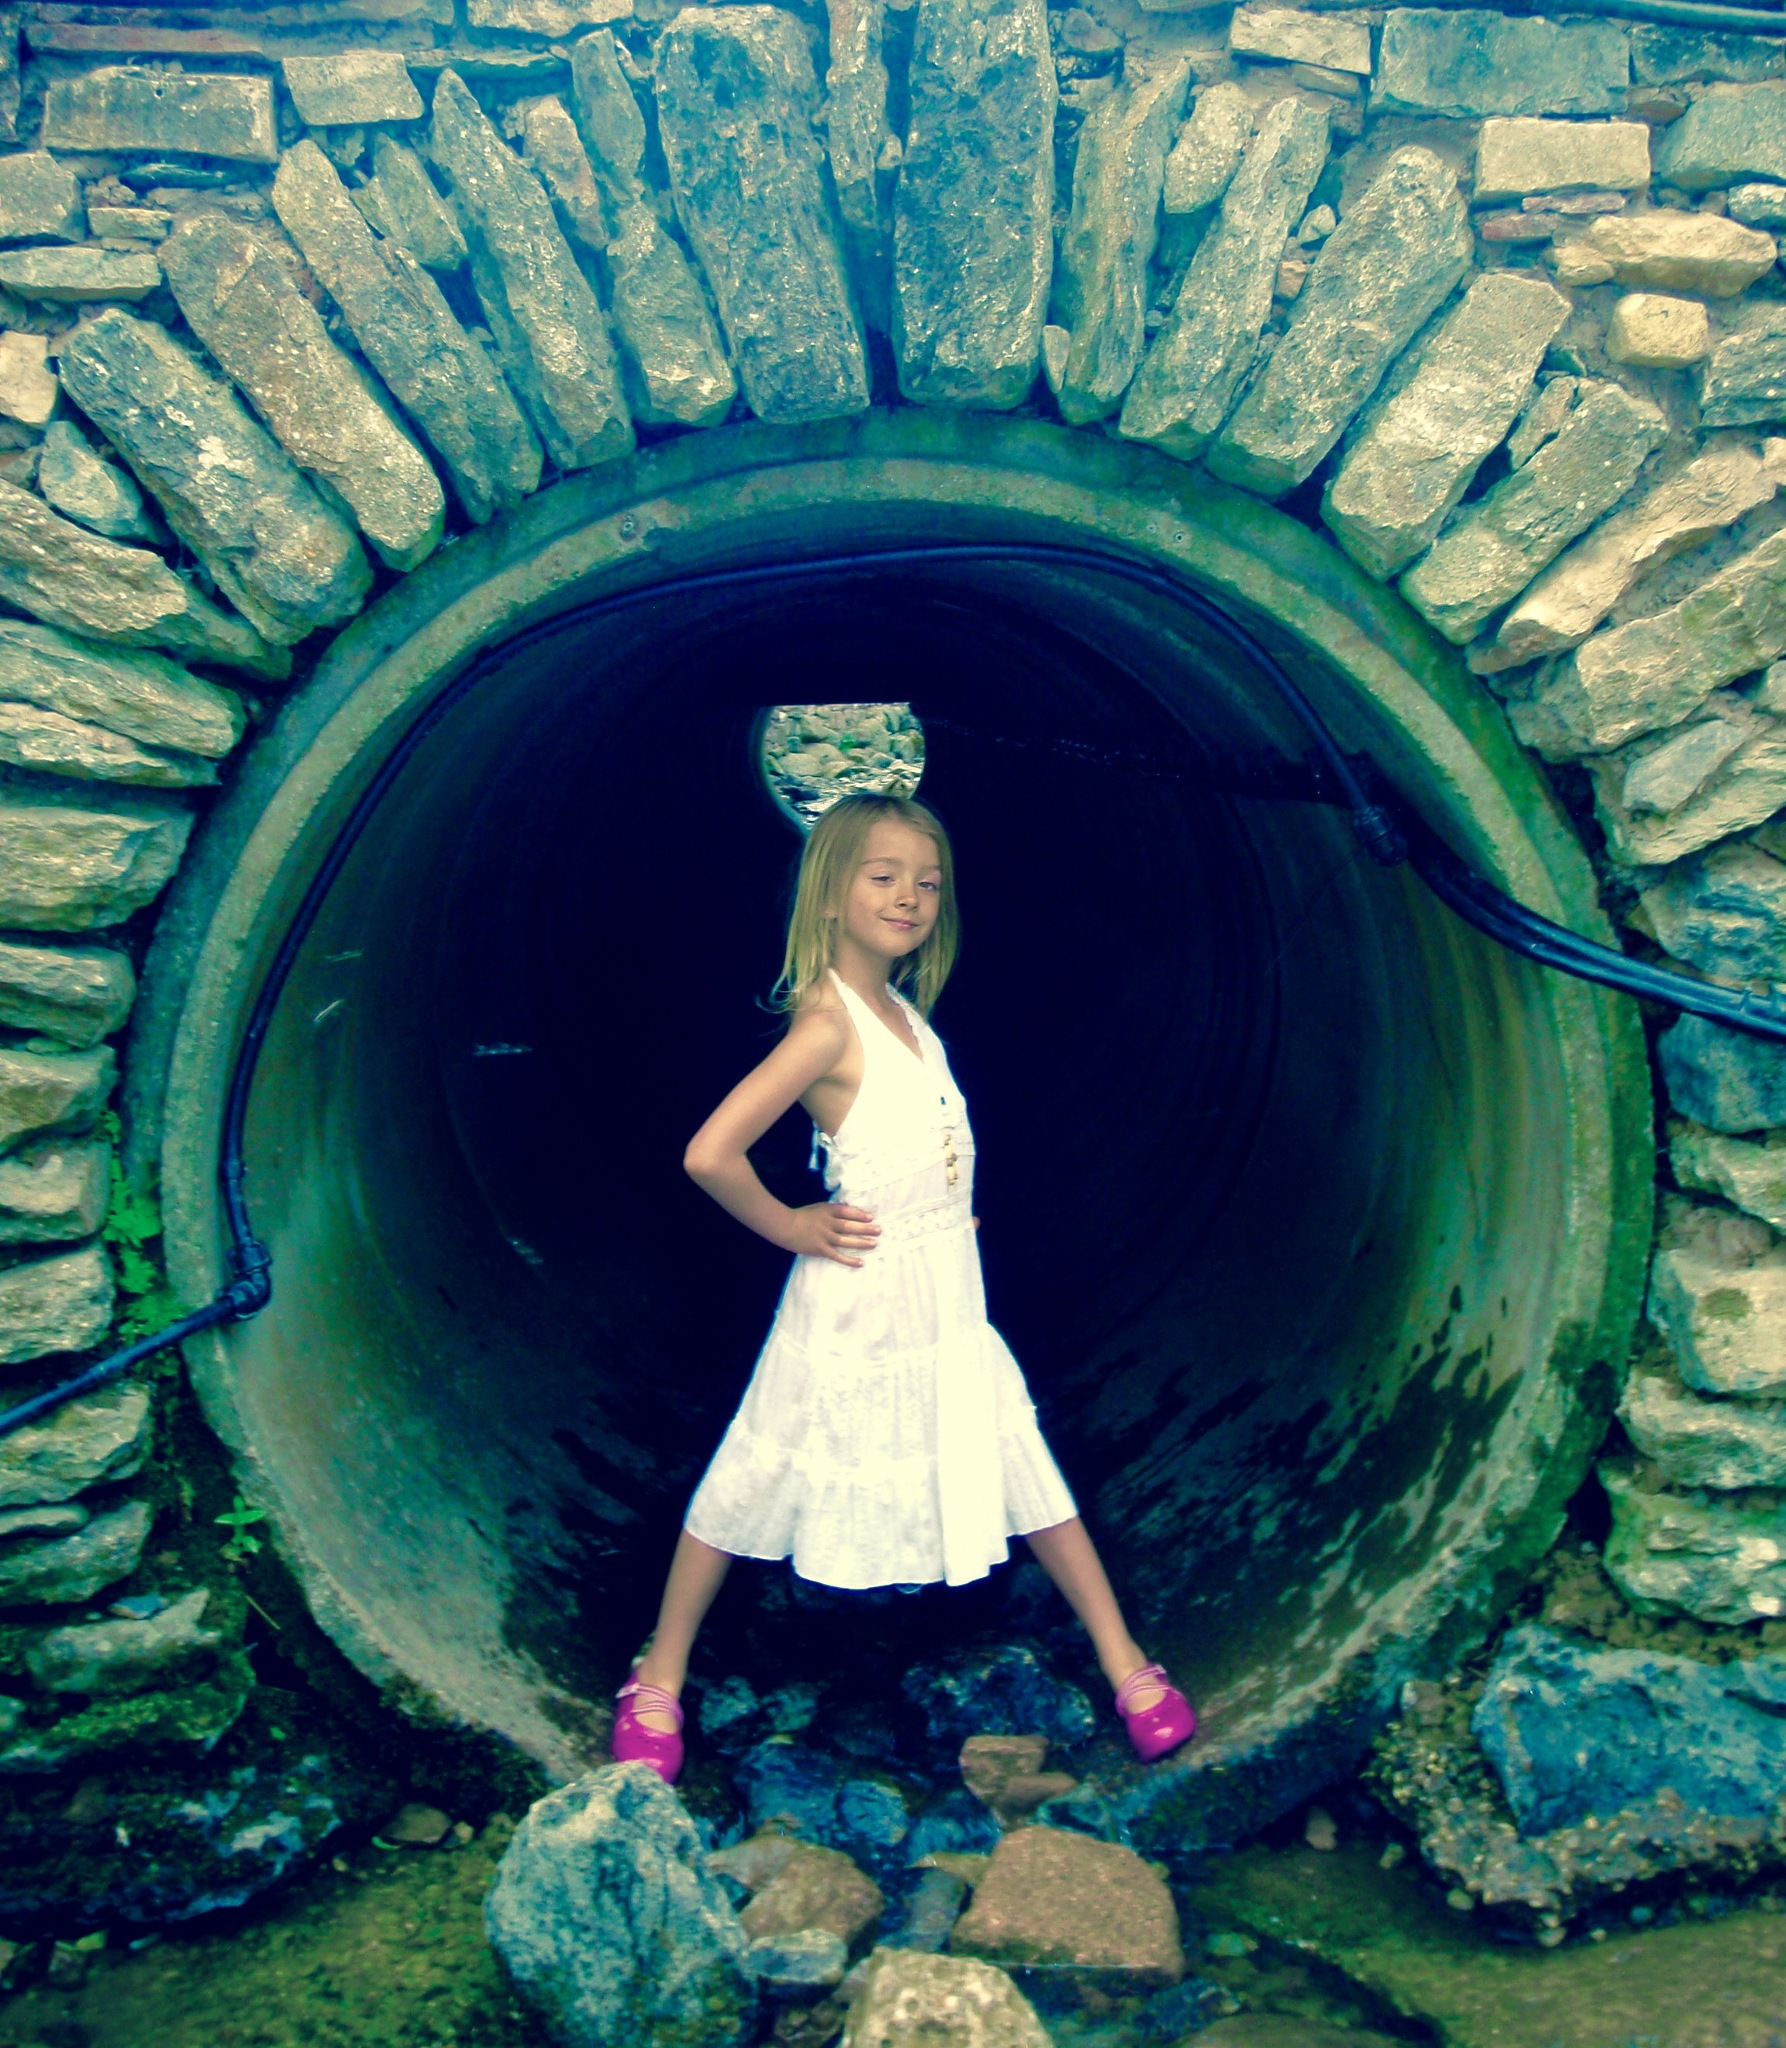 Tunnel Girl by Lucinda Jeane